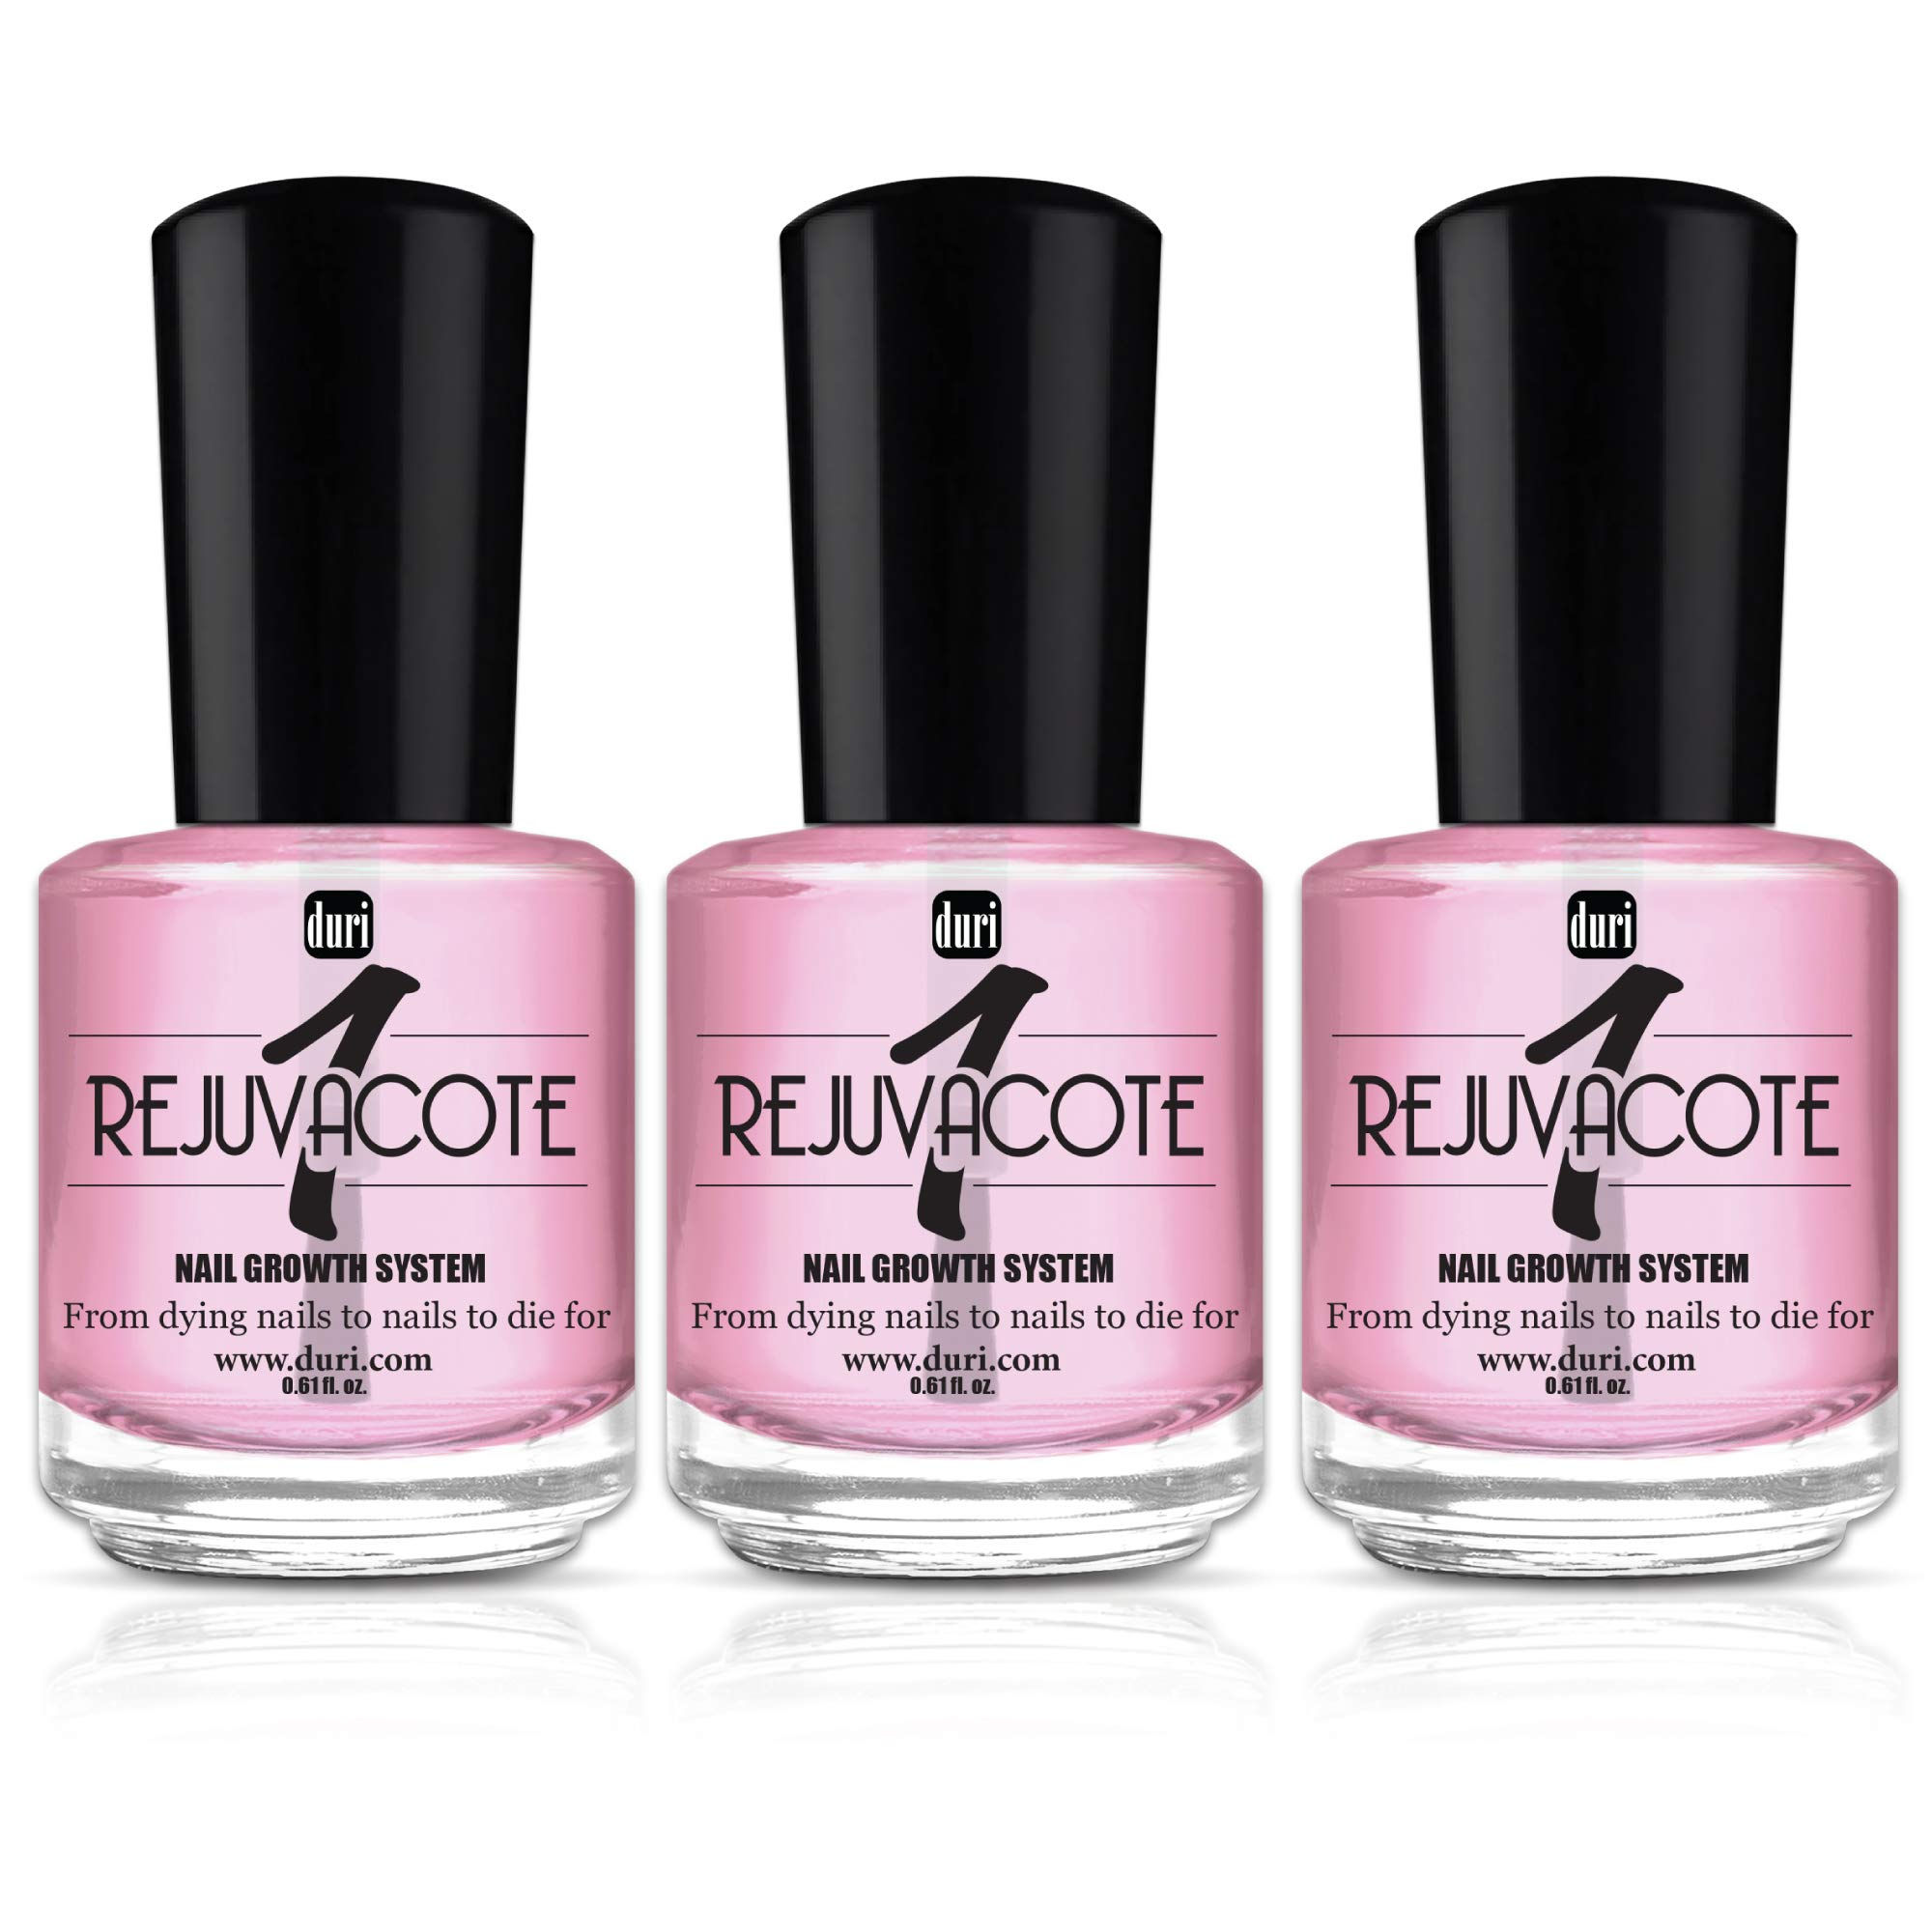 duri Rejuvacote 1 Original Maximum Strength Nail Growth System, Base and Top Coat, 3 Pack, 0.61 fl.oz. Each by duri